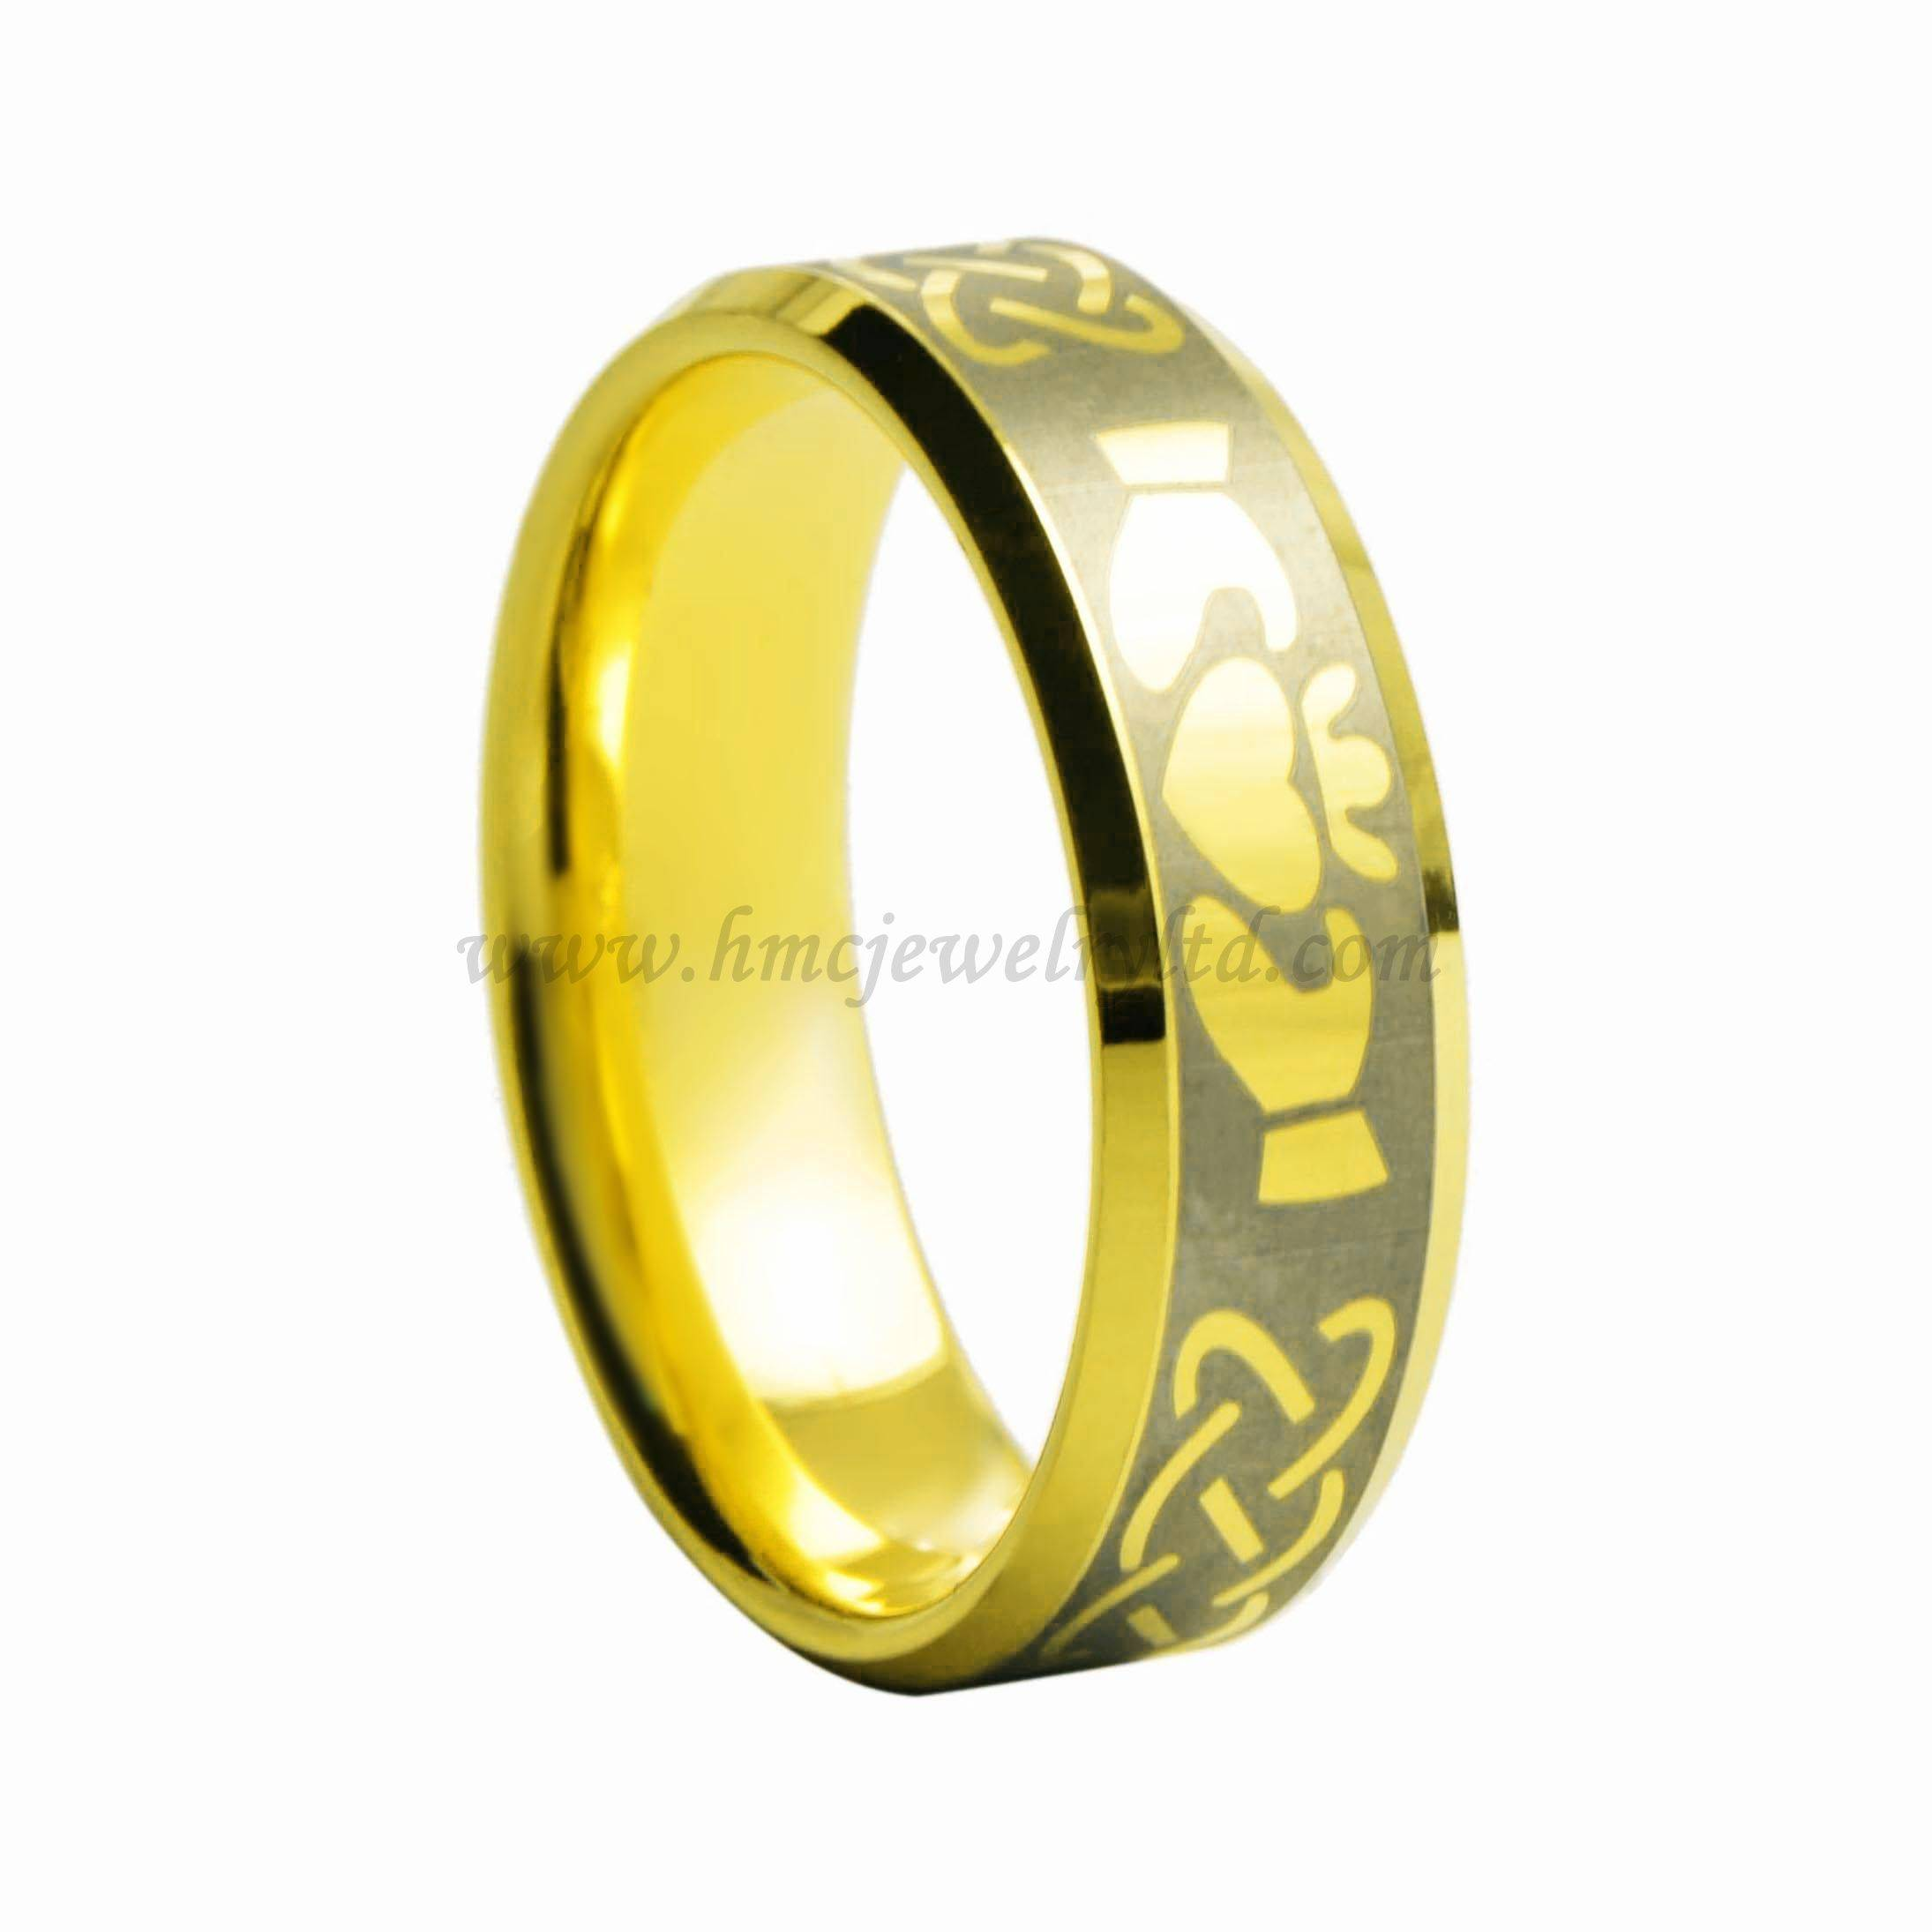 Gold Plated Tungsten Carbide Love Band Rings, Tungsten Carbide Claddagh Ring